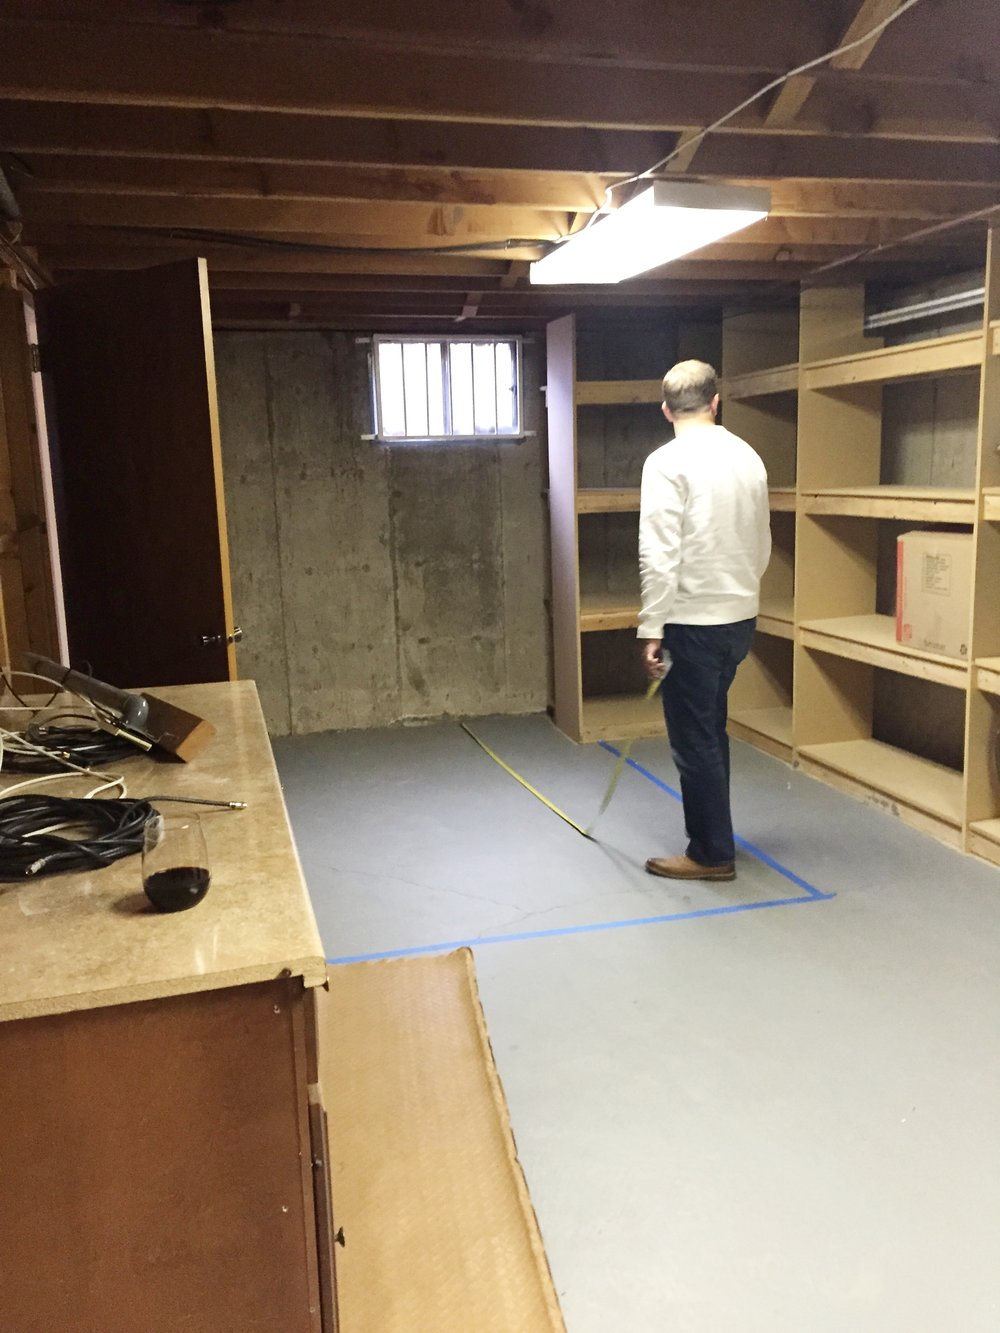 The large storage room where we would use half of the space for a bathroom